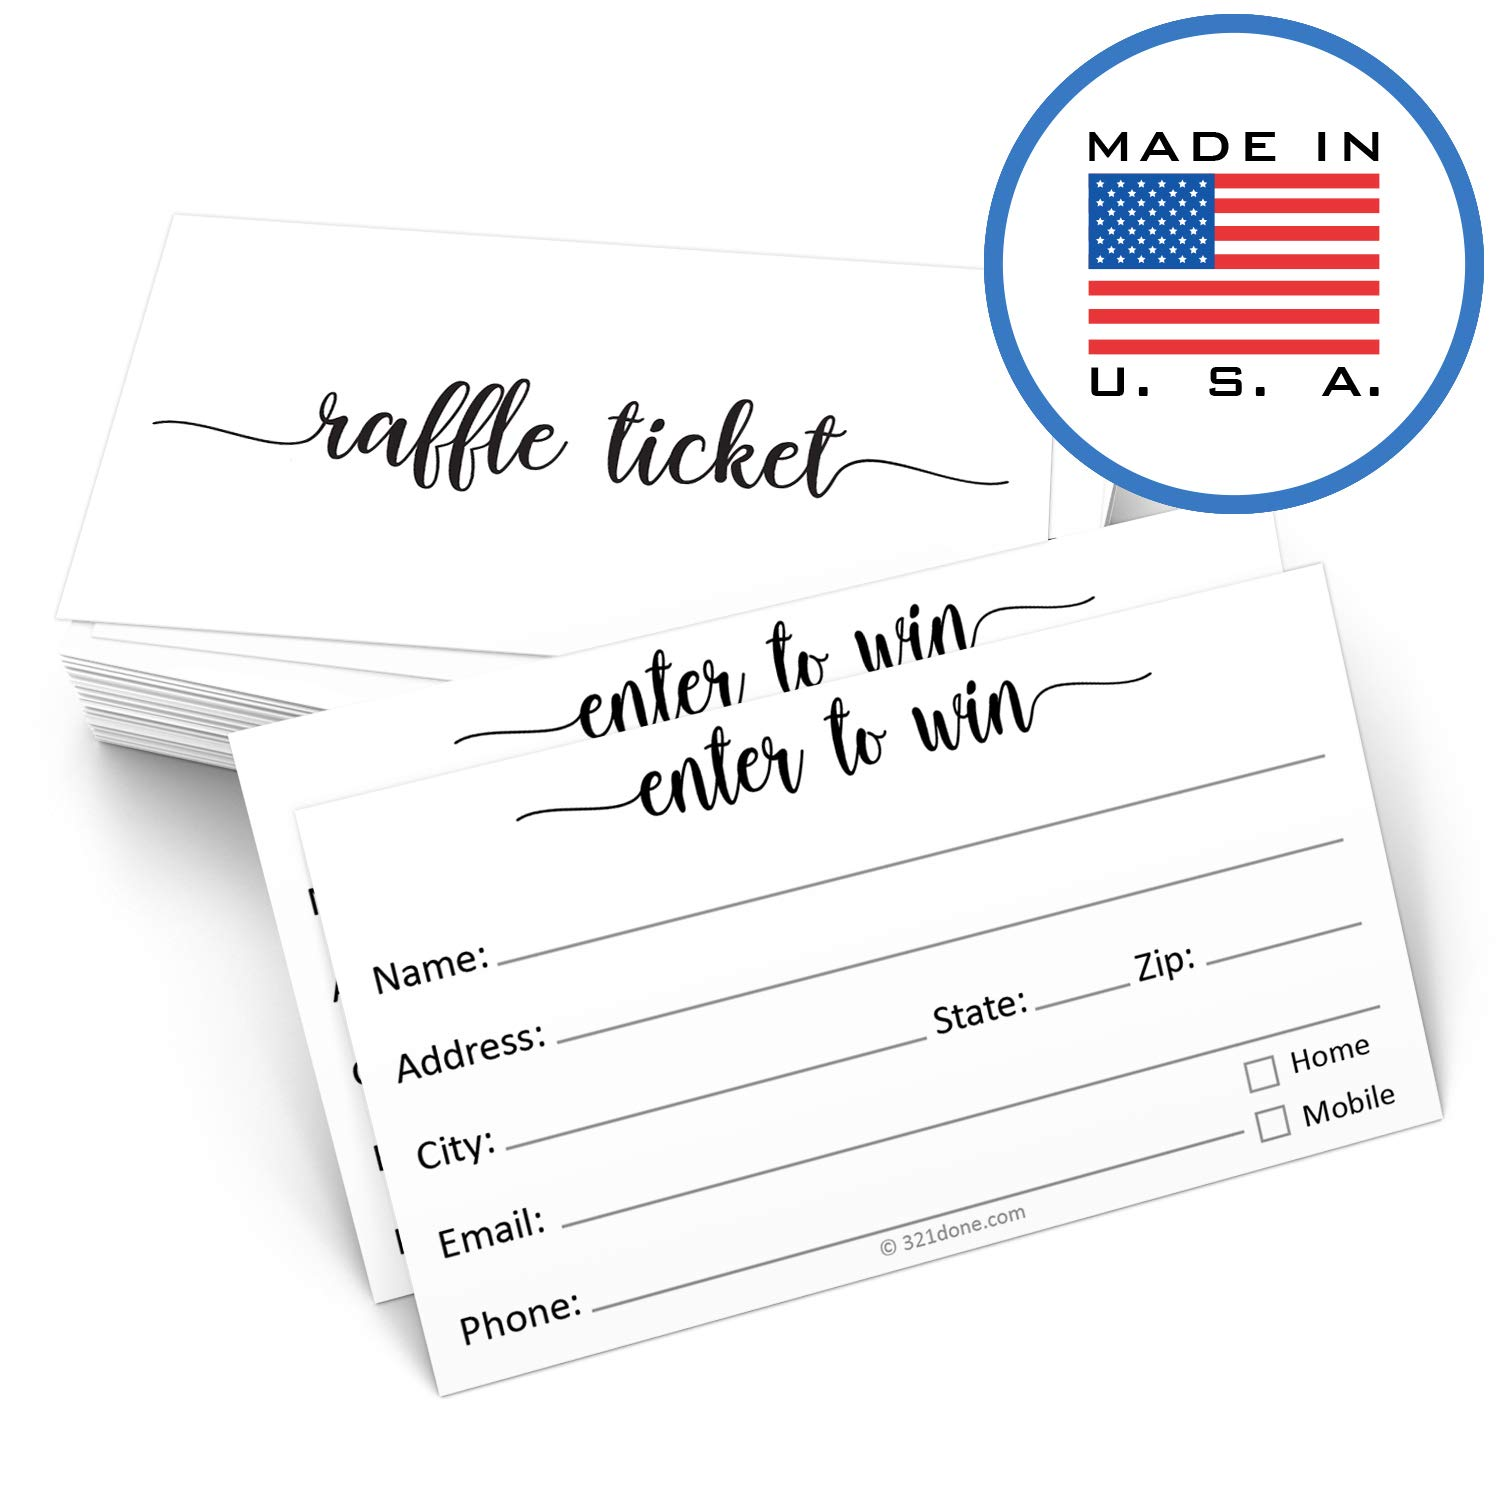 321Done Raffle Tickets with Name Address Phone Email (50 Cards) 3.5'' x 2'', Enter to Win Entry Form for Contests, Drawings, Raffles, Lotteries Prize Game, White